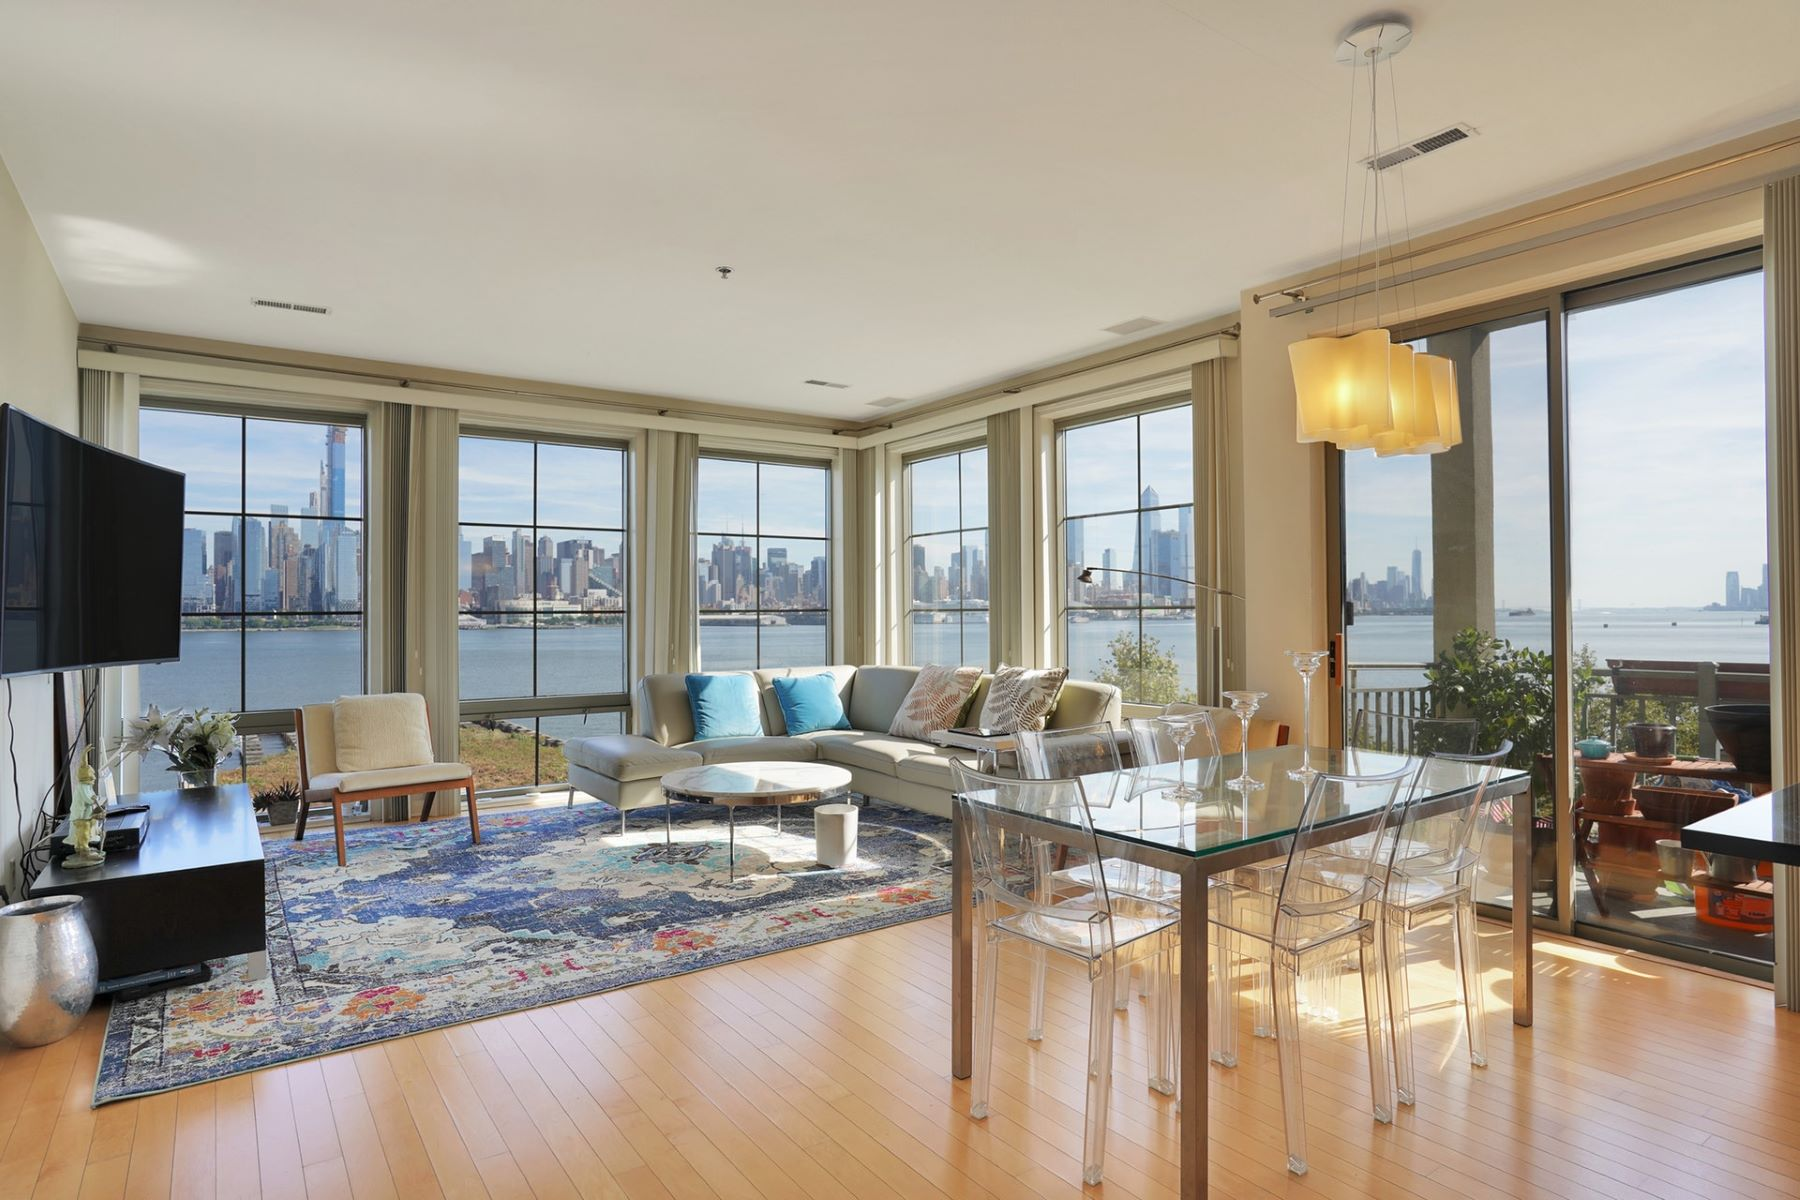 Condominiums 為 出售 在 Enjoy this stunning South East home with NYC and the Hudson River views i 24 Avenue at Port Imperial #303, West New York, 新澤西州 07093 美國